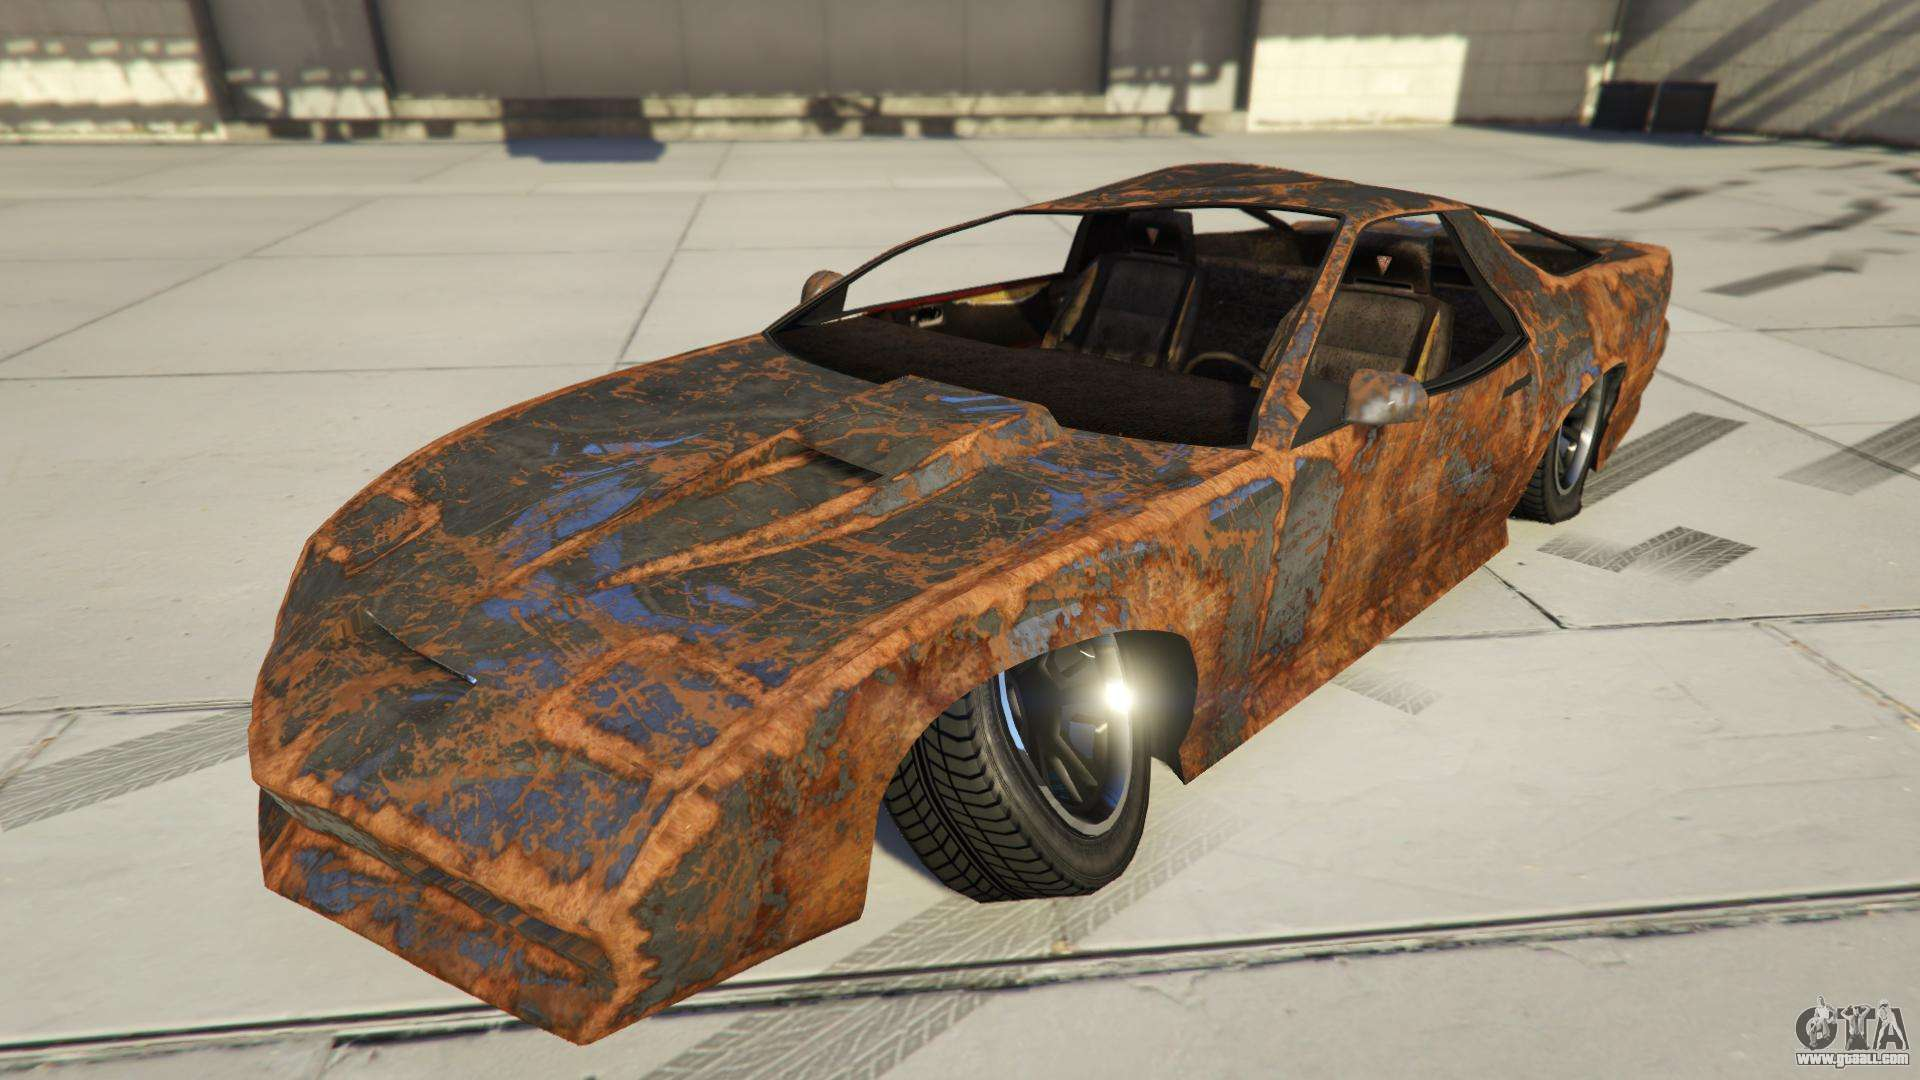 GTA 5 vehicles: all cars and motorcycles, planes and helicopters ...